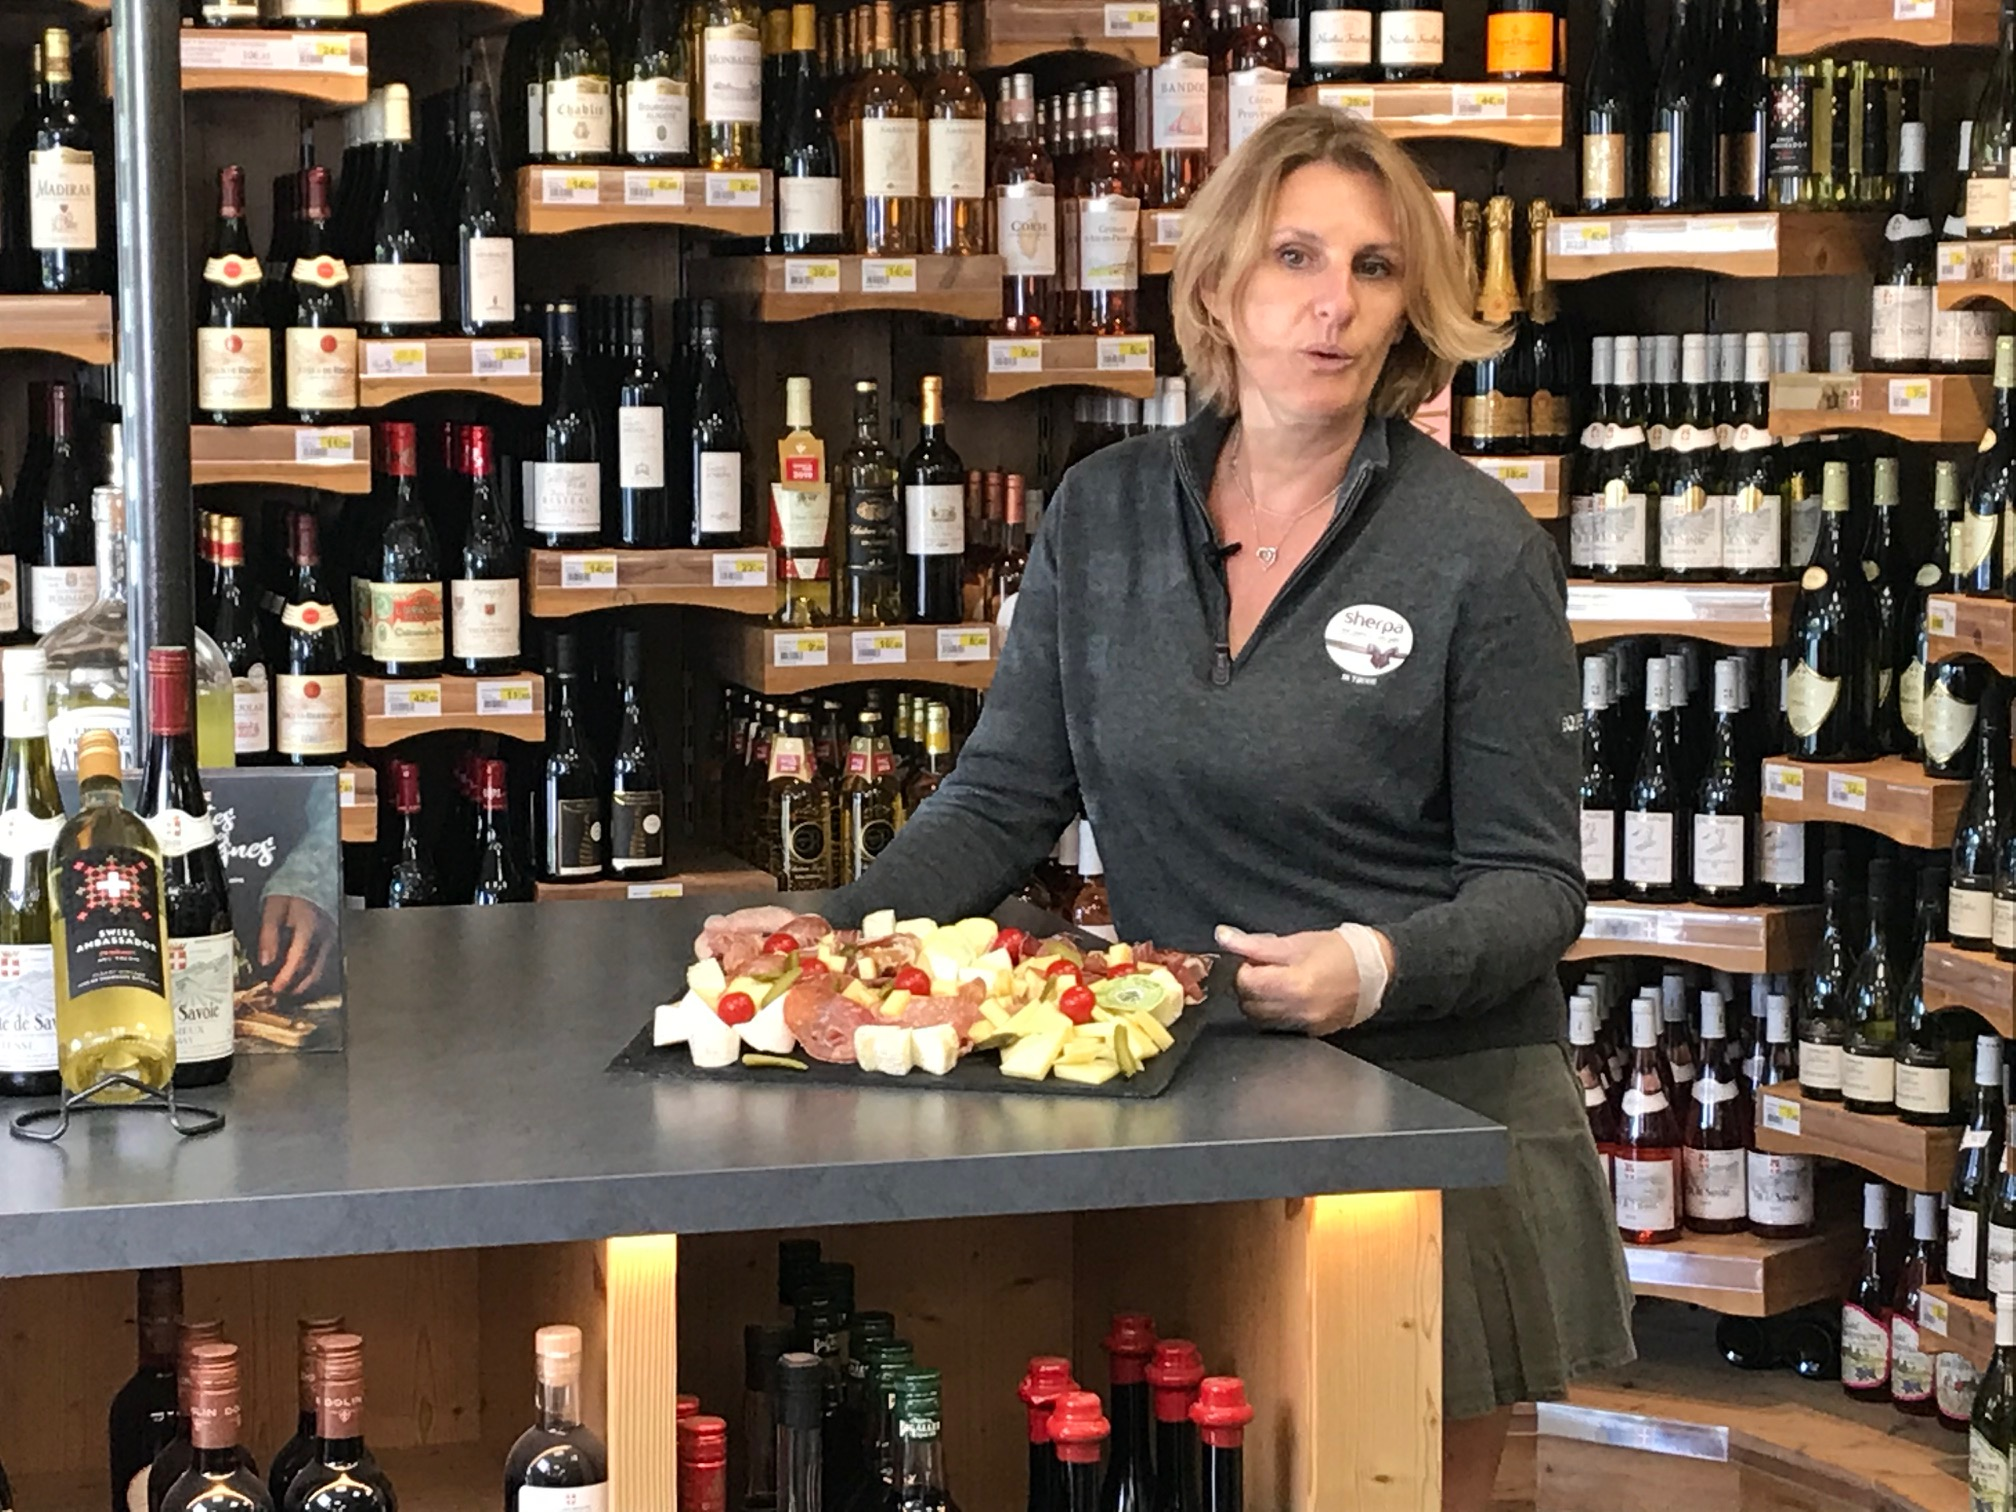 Sherpa supermarket Gets (les) wine cellar and raclette recipe